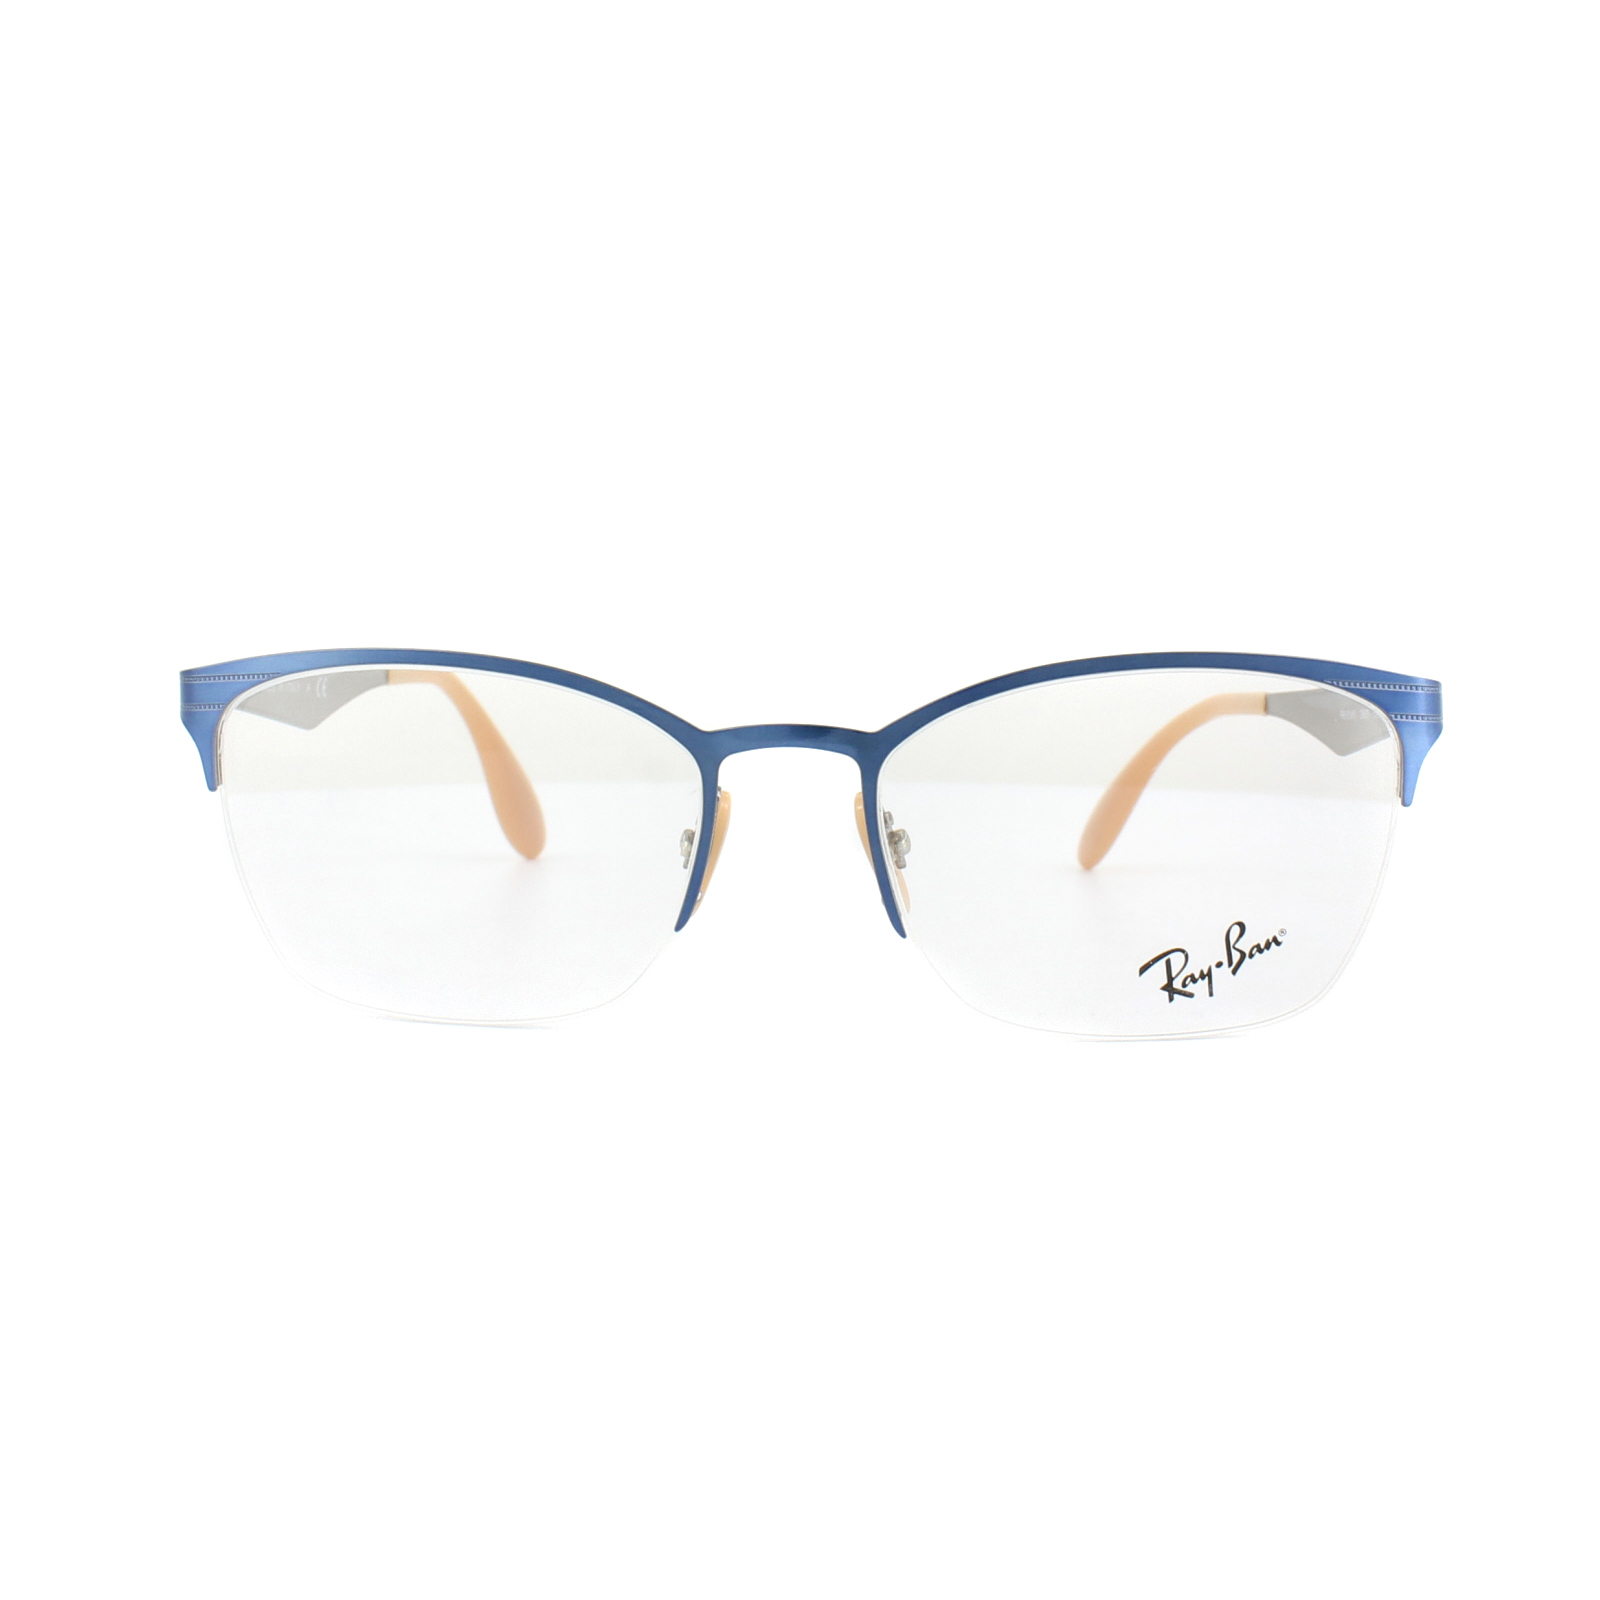 1a6c9b0f4e Sentinel Ray-Ban Glasses Frames RX 6345 2865 Top Brushed Light Blue On Grey  Womens 54mm